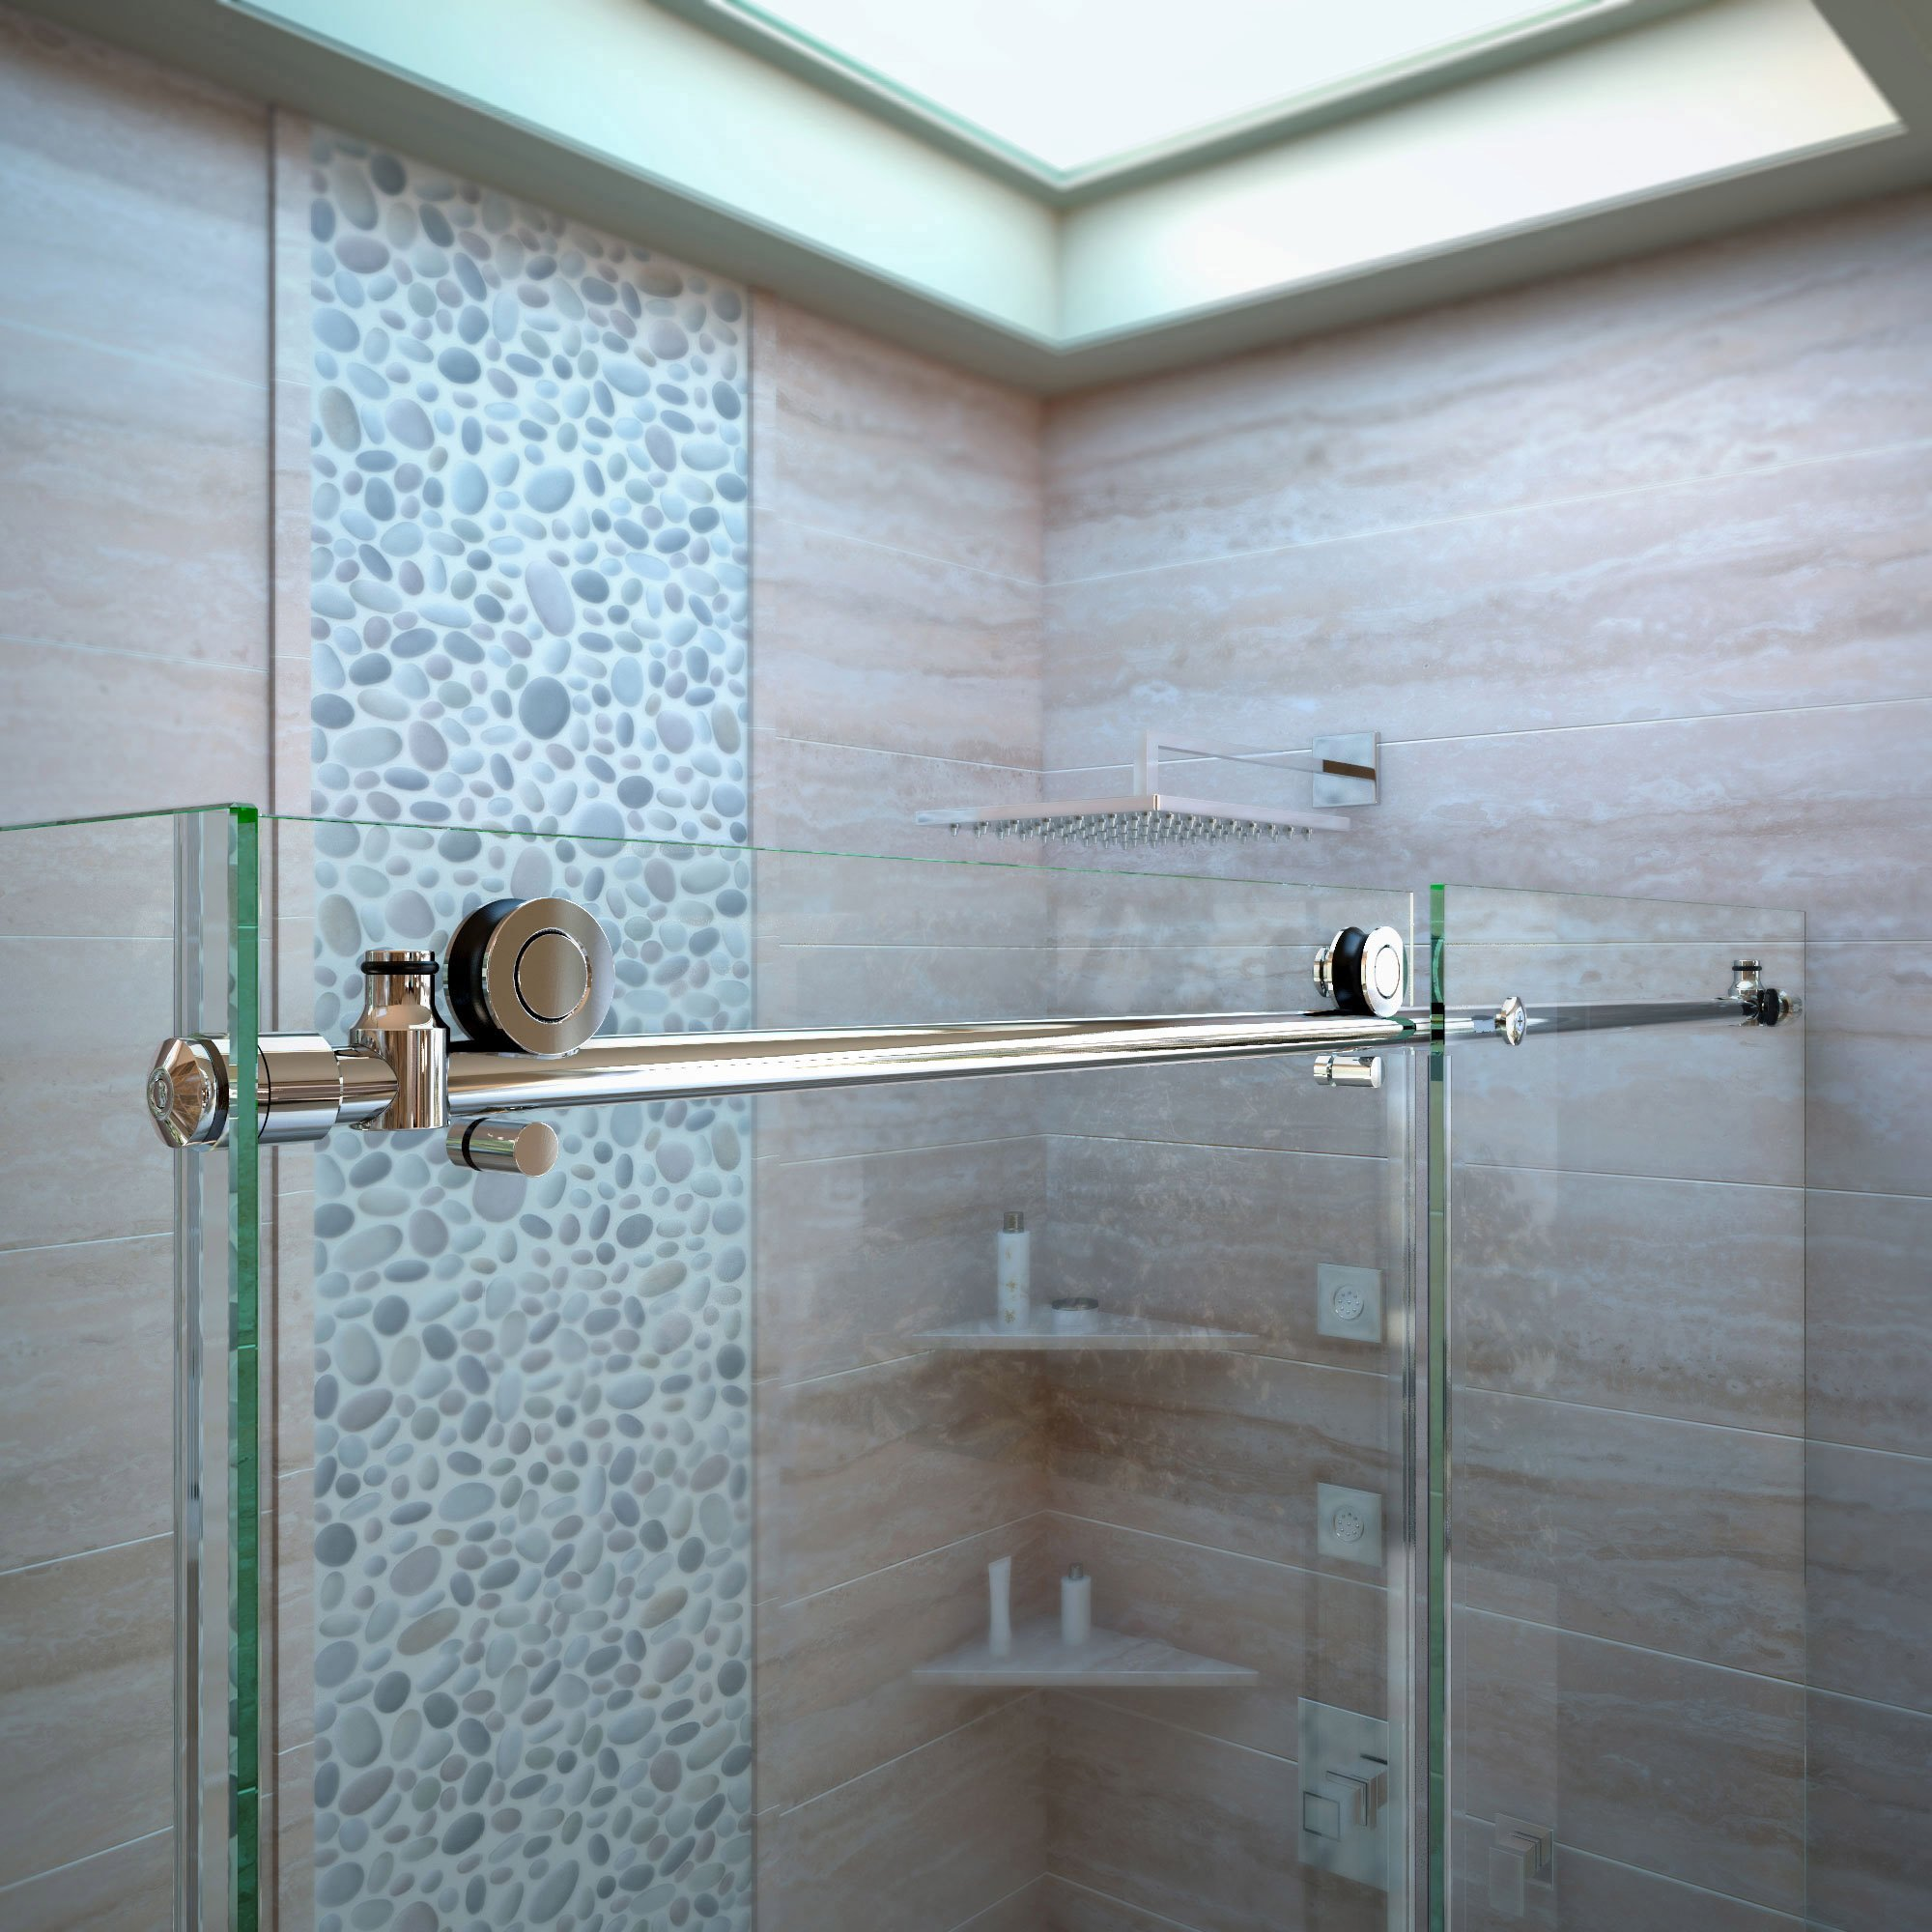 DreamLine Enigma-X 55-59 in. W x 62 in. H Fully Frameless Sliding Tub Door in Polished Stainless Steel, SHDR-61606210-08 by DreamLine (Image #8)